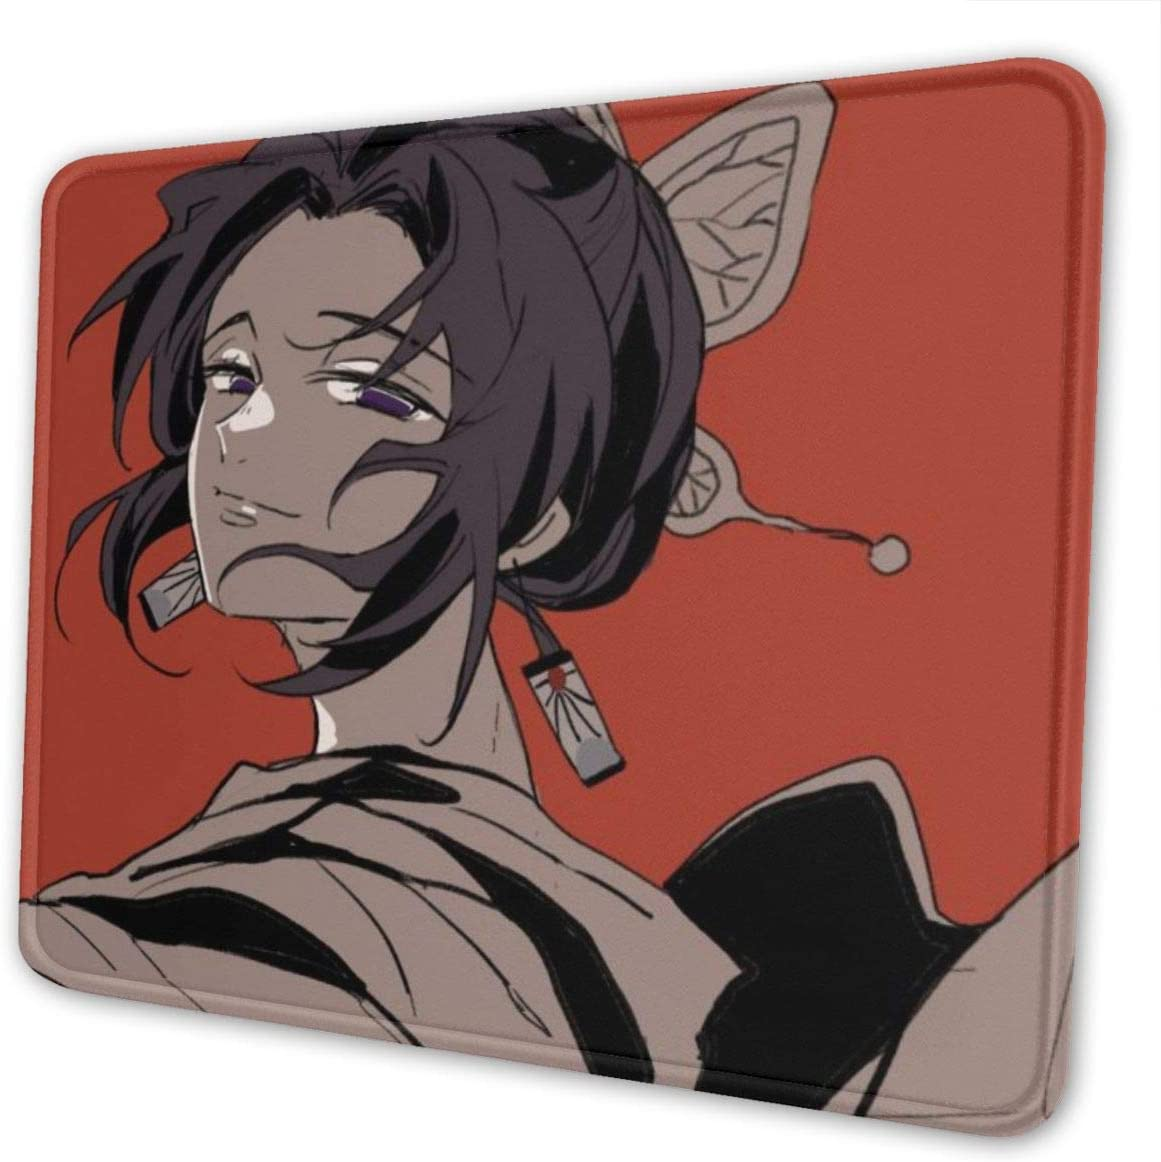 TGRNF De-mon Slayer Kochou Shinobu Game Keyboard Mouse Pad for Computer Desktop PC Laptop Anime Beautiful Stylish